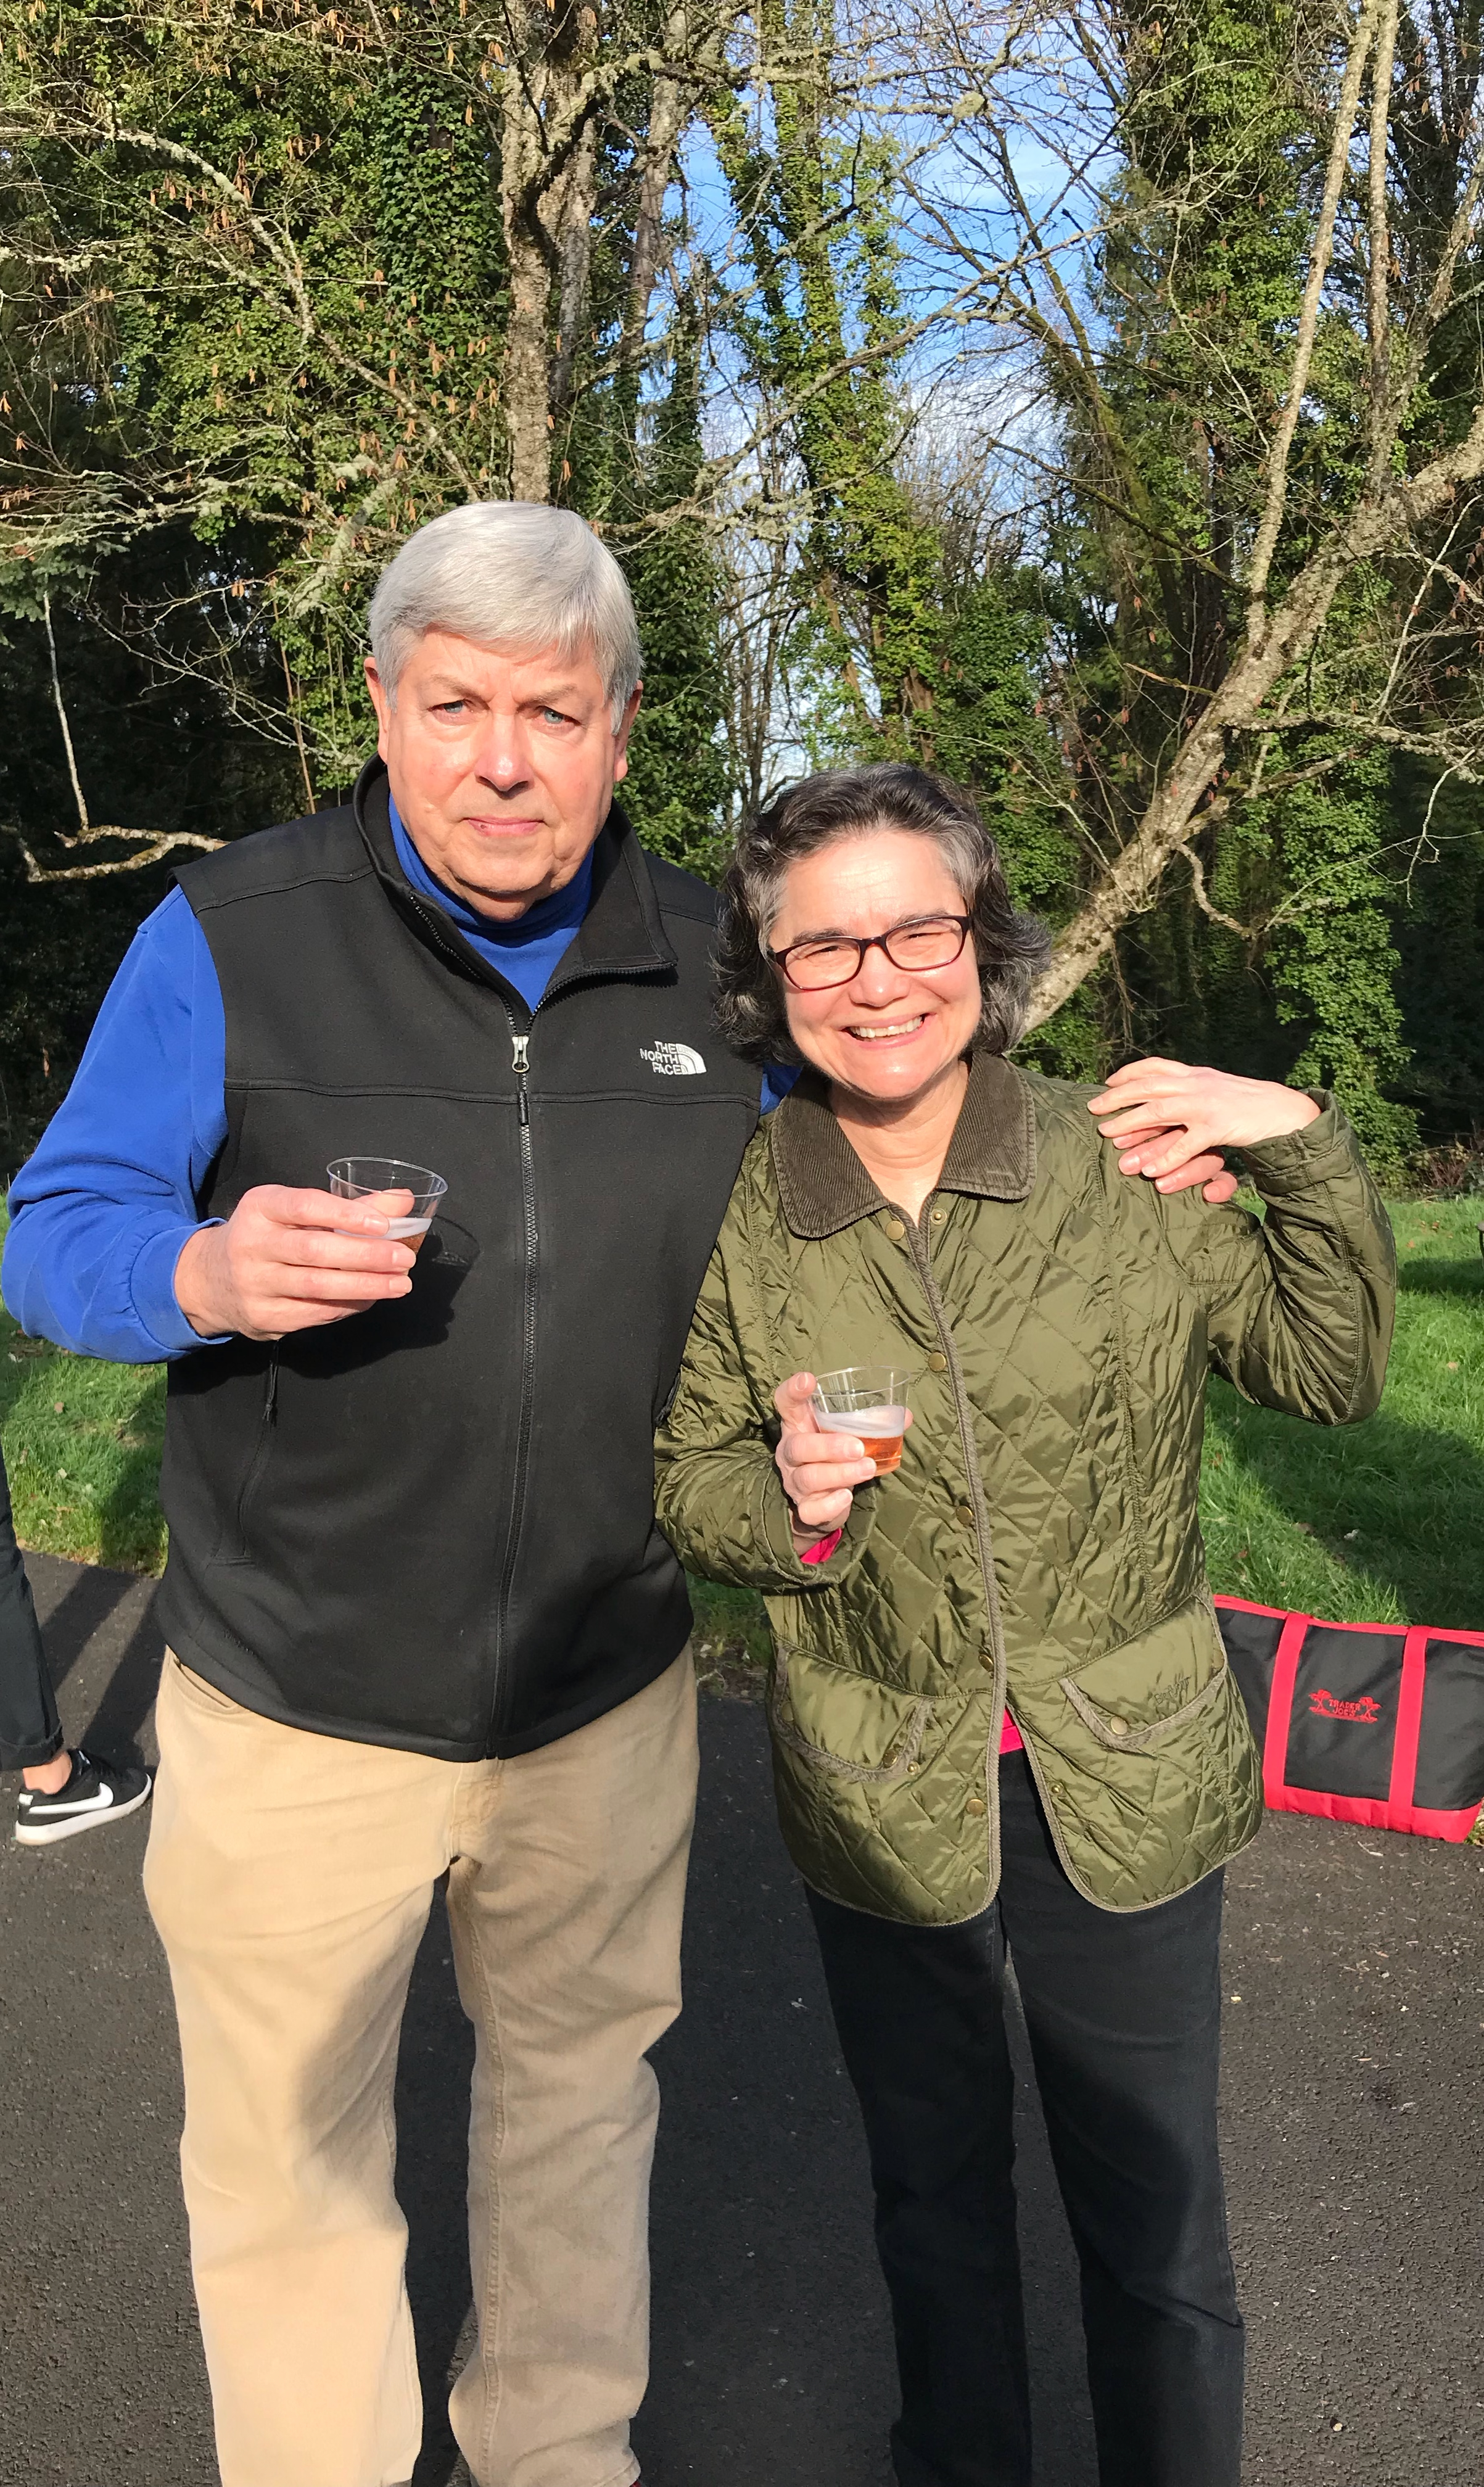 Scott Burns, PhD Professor of Geology at PSU celebrates with South Burlingame neighbor Linda